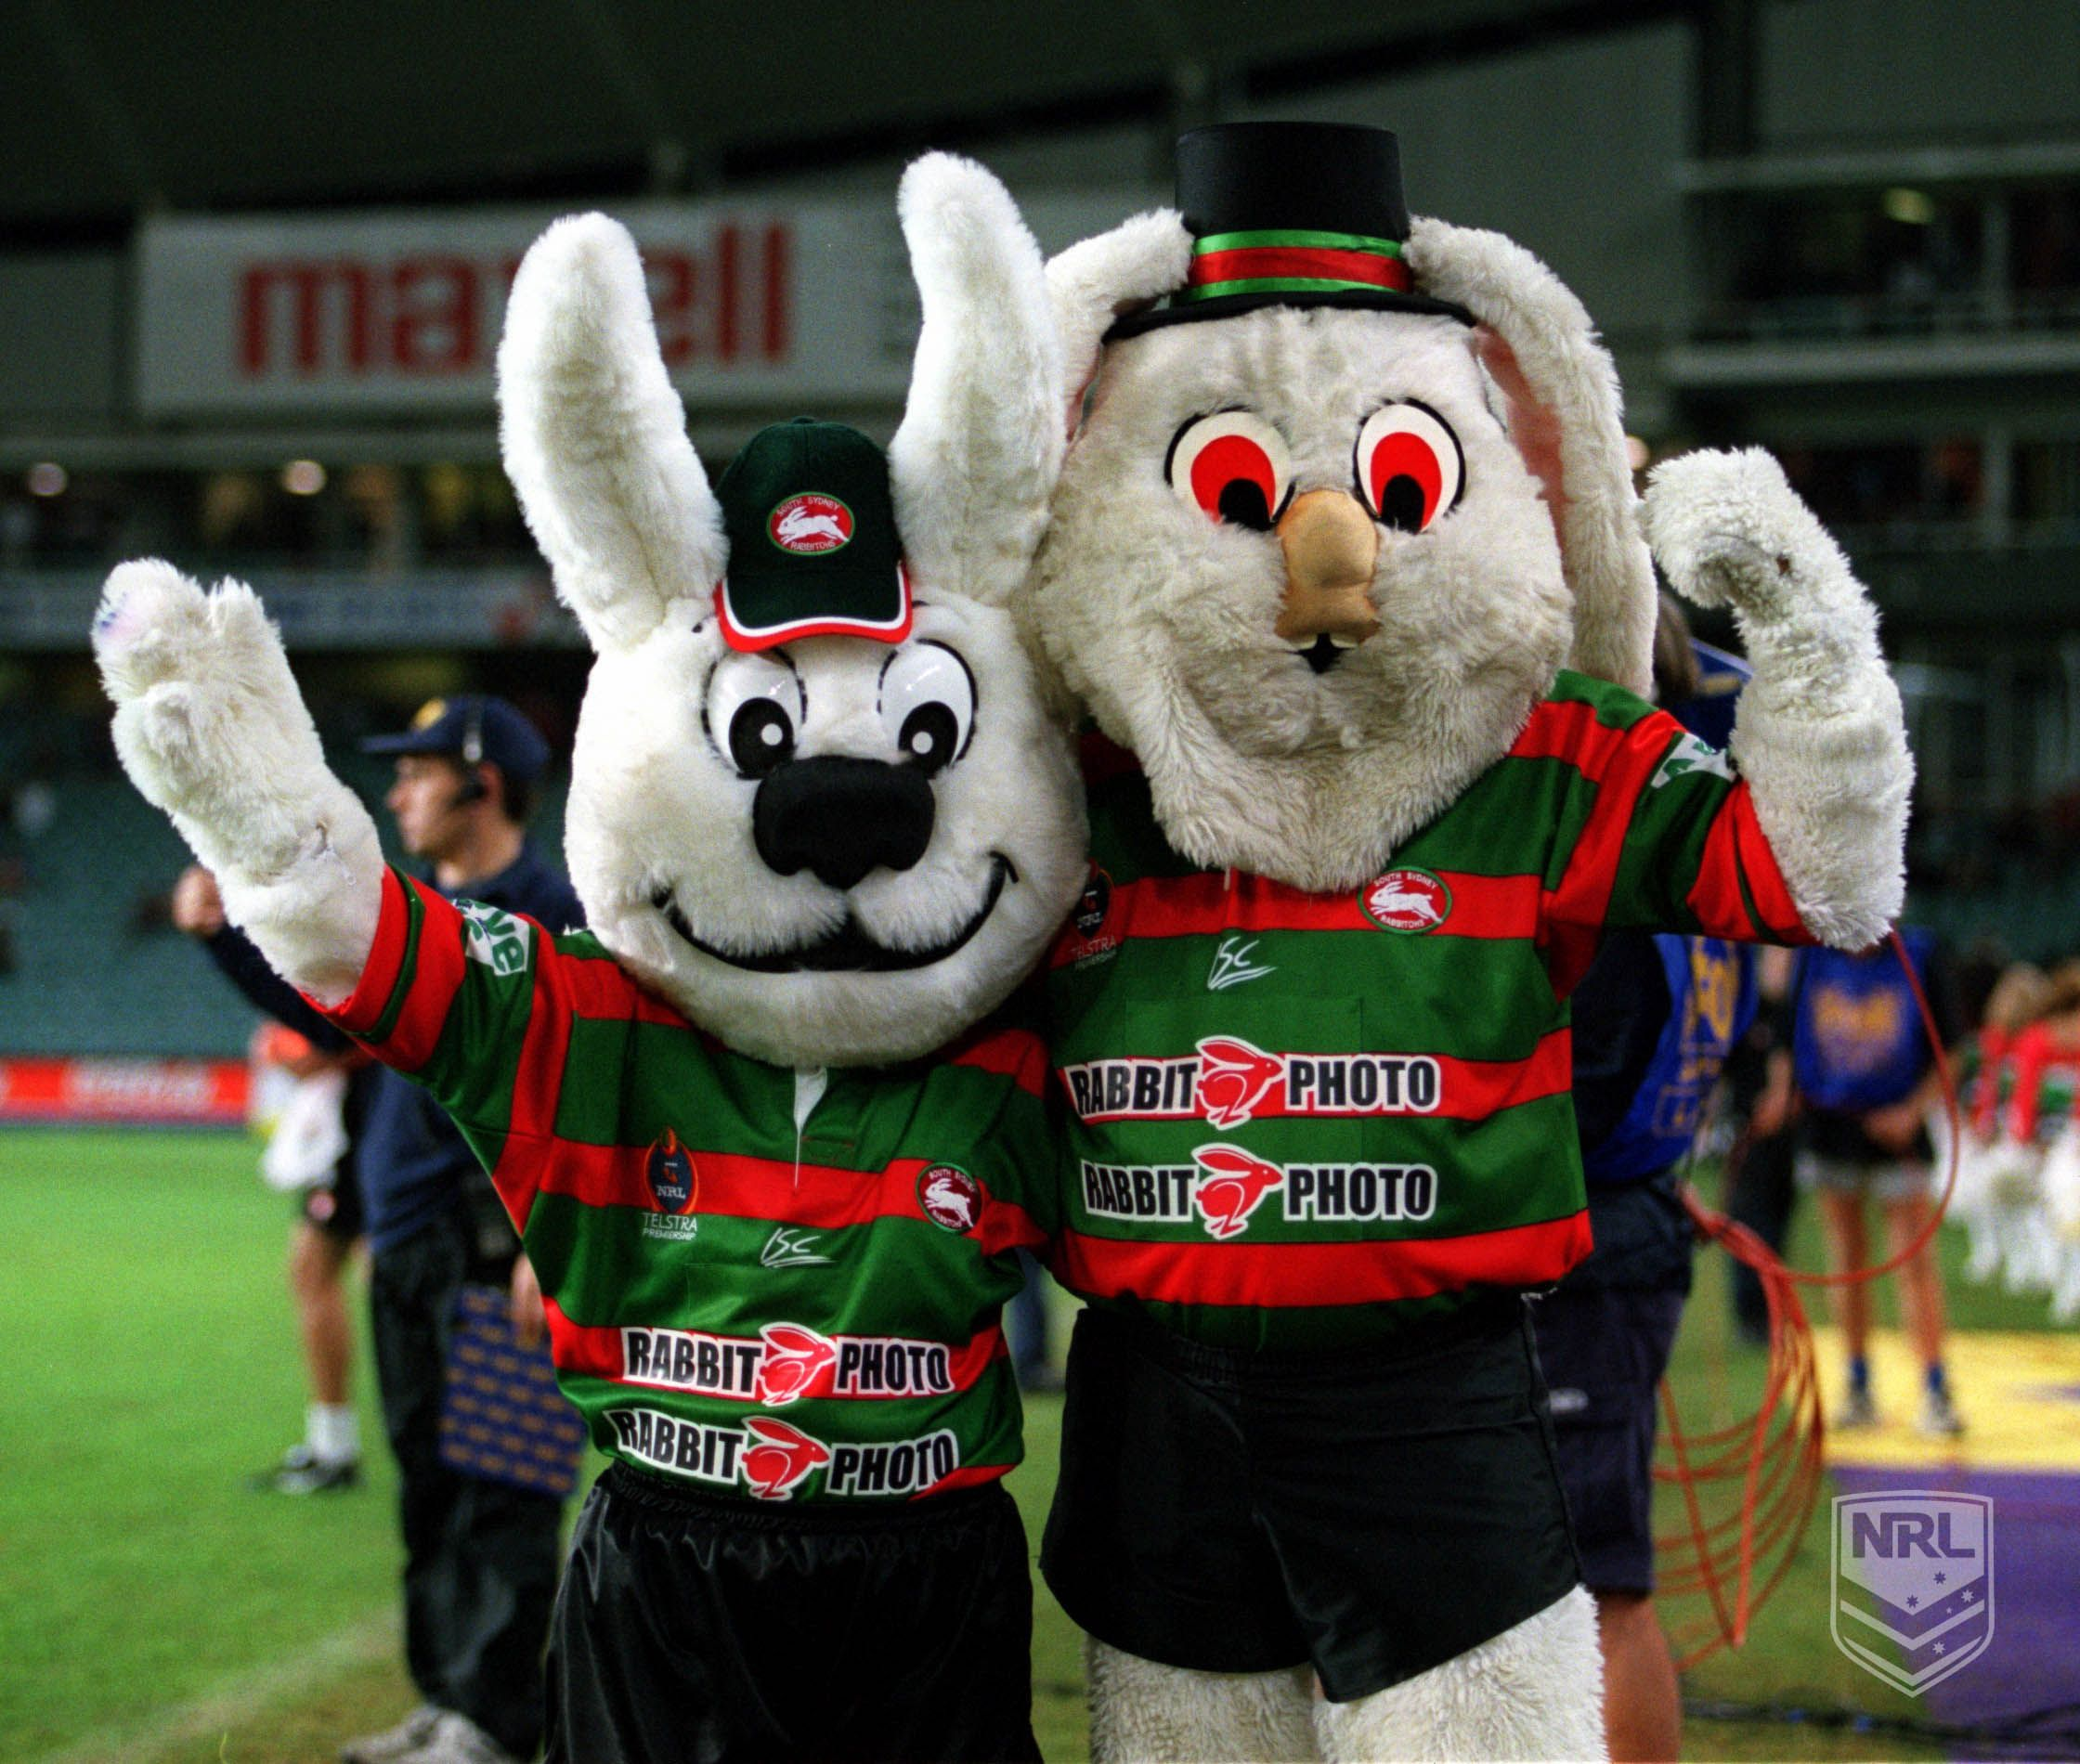 South Sydney Rabbitohs Mascot Rabbit Photos National Rugby League Nrl